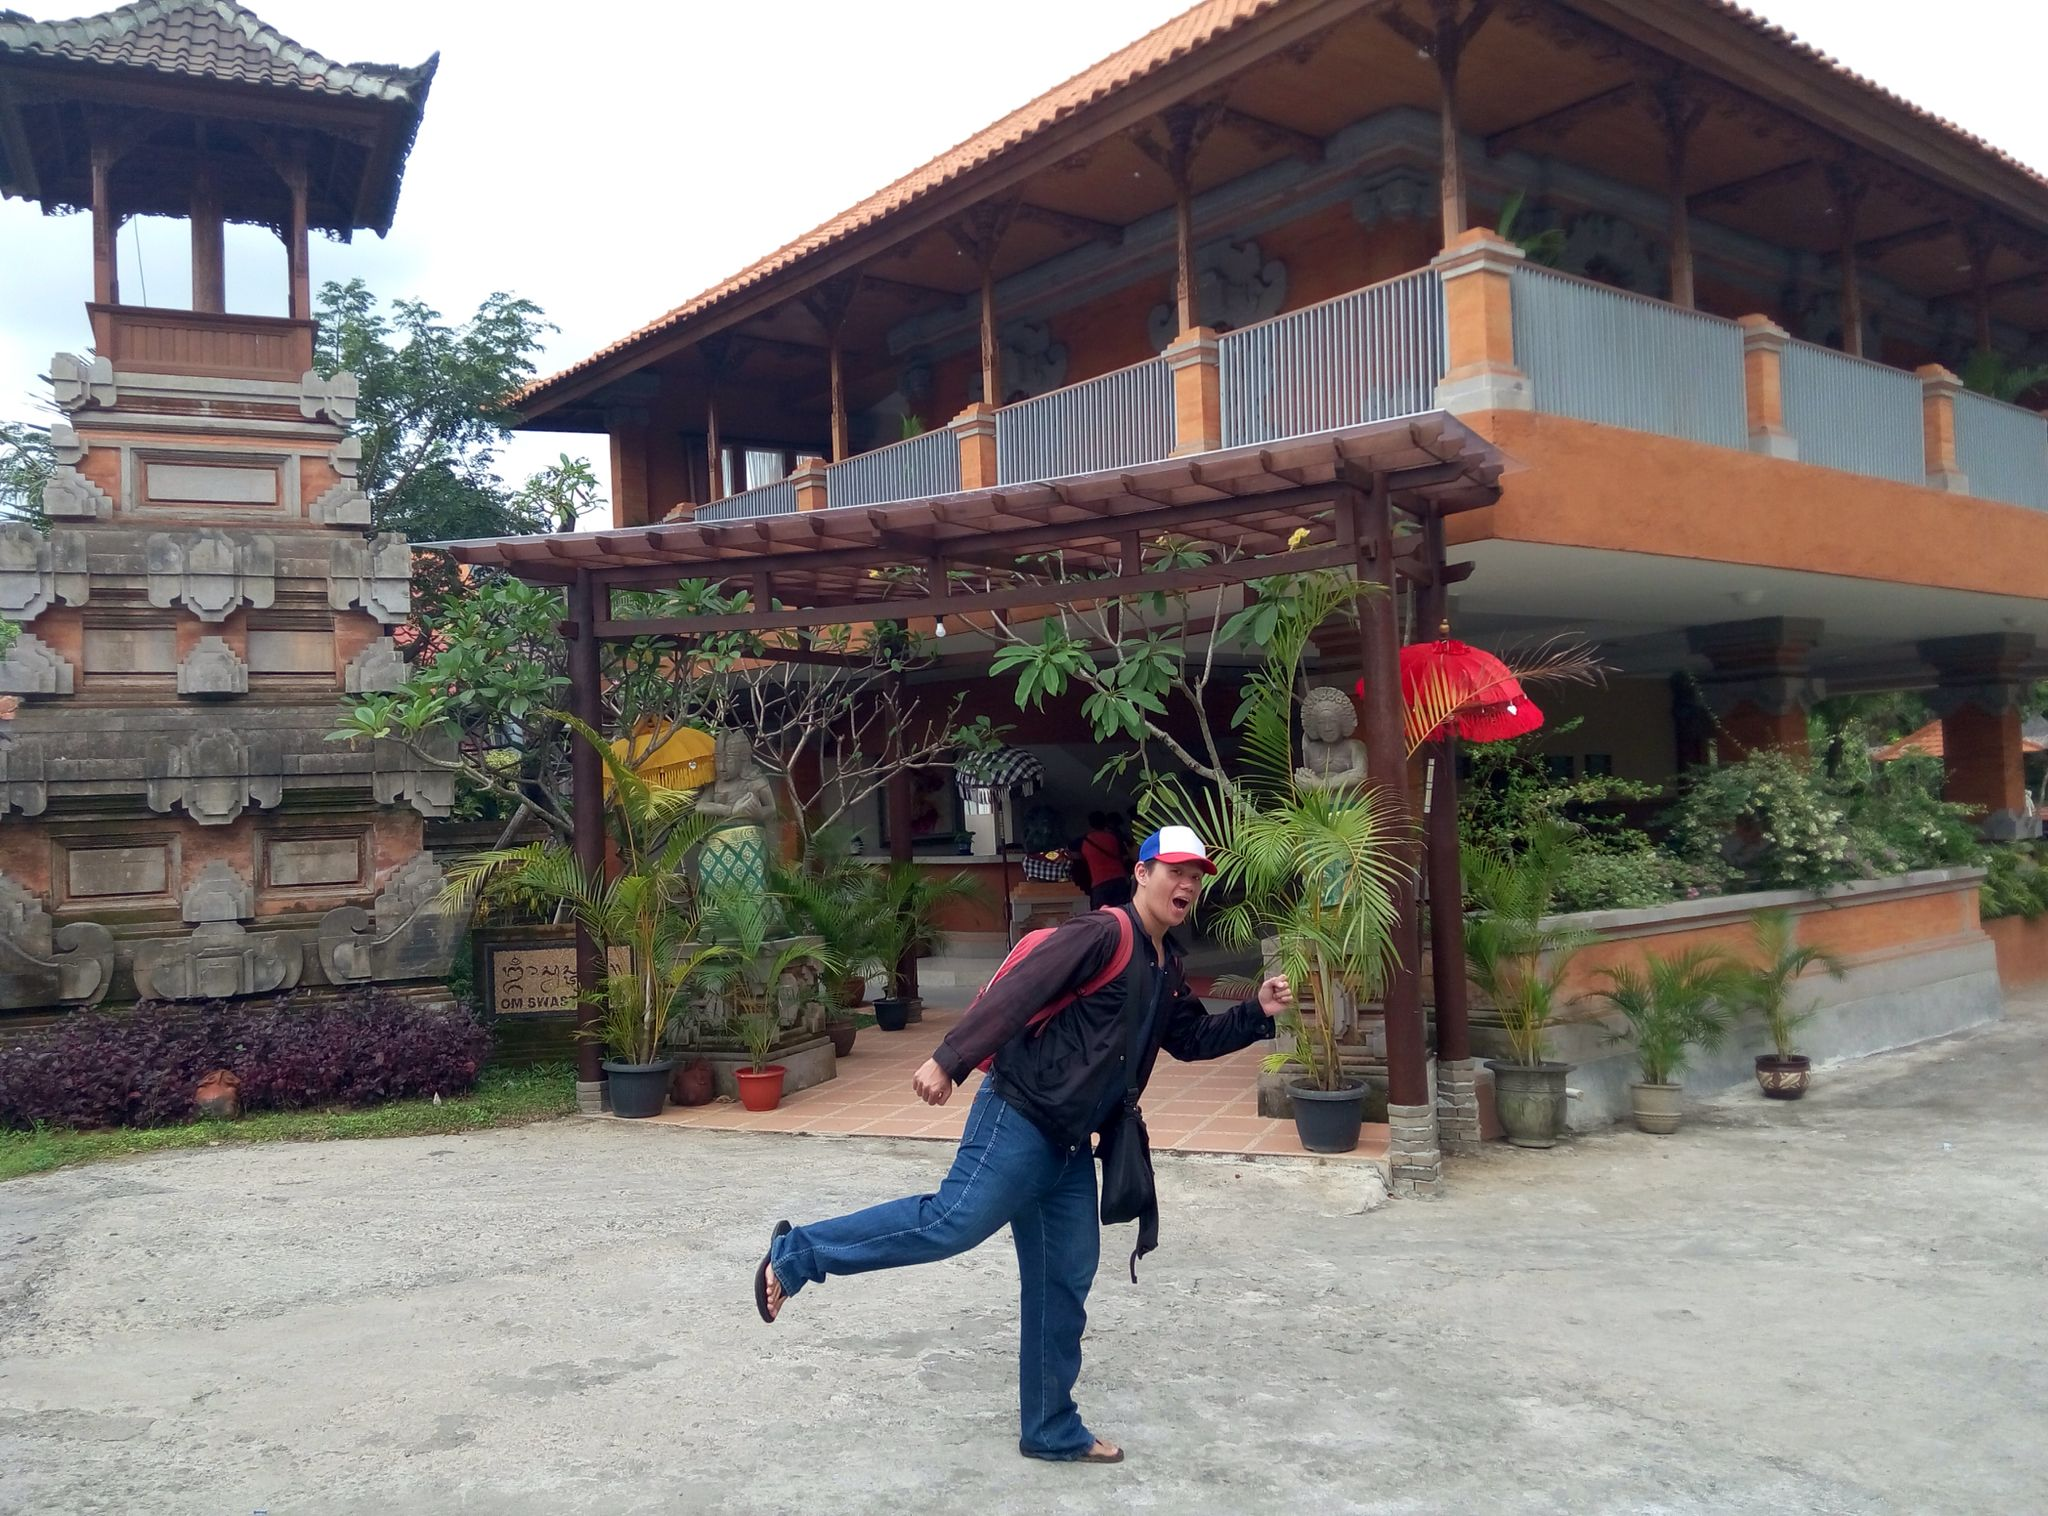 UBUD COTTAGES MALANG ... Bali themed Hotel ... SWIMMING POOL AREA ... Photo session ... Pose 12 ... Ready for Pokemon Go